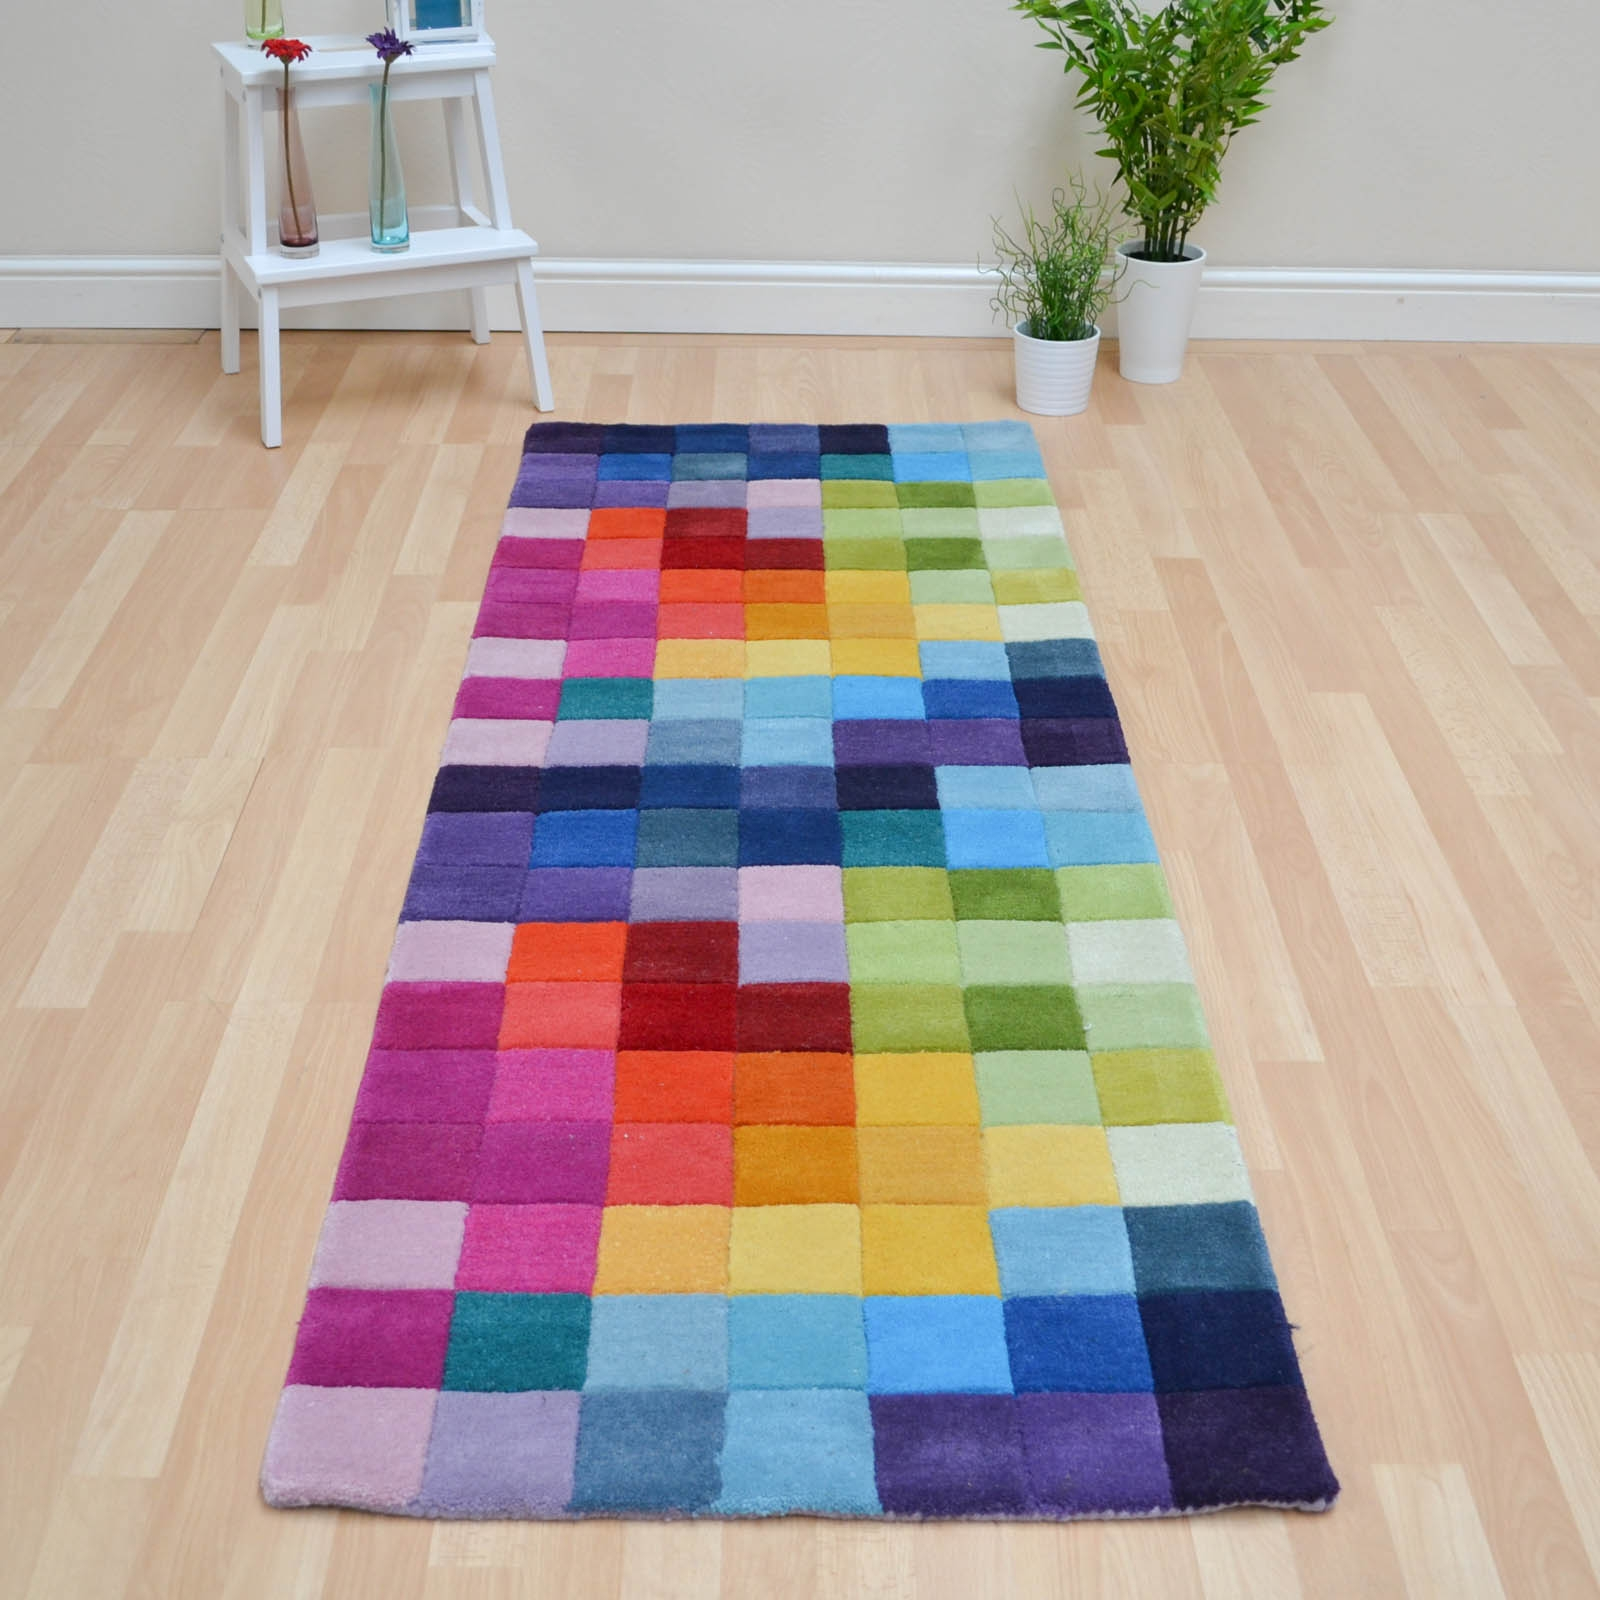 Hall Runner Rugs Uk Roselawnlutheran Throughout Hall Runner (Image 9 of 15)